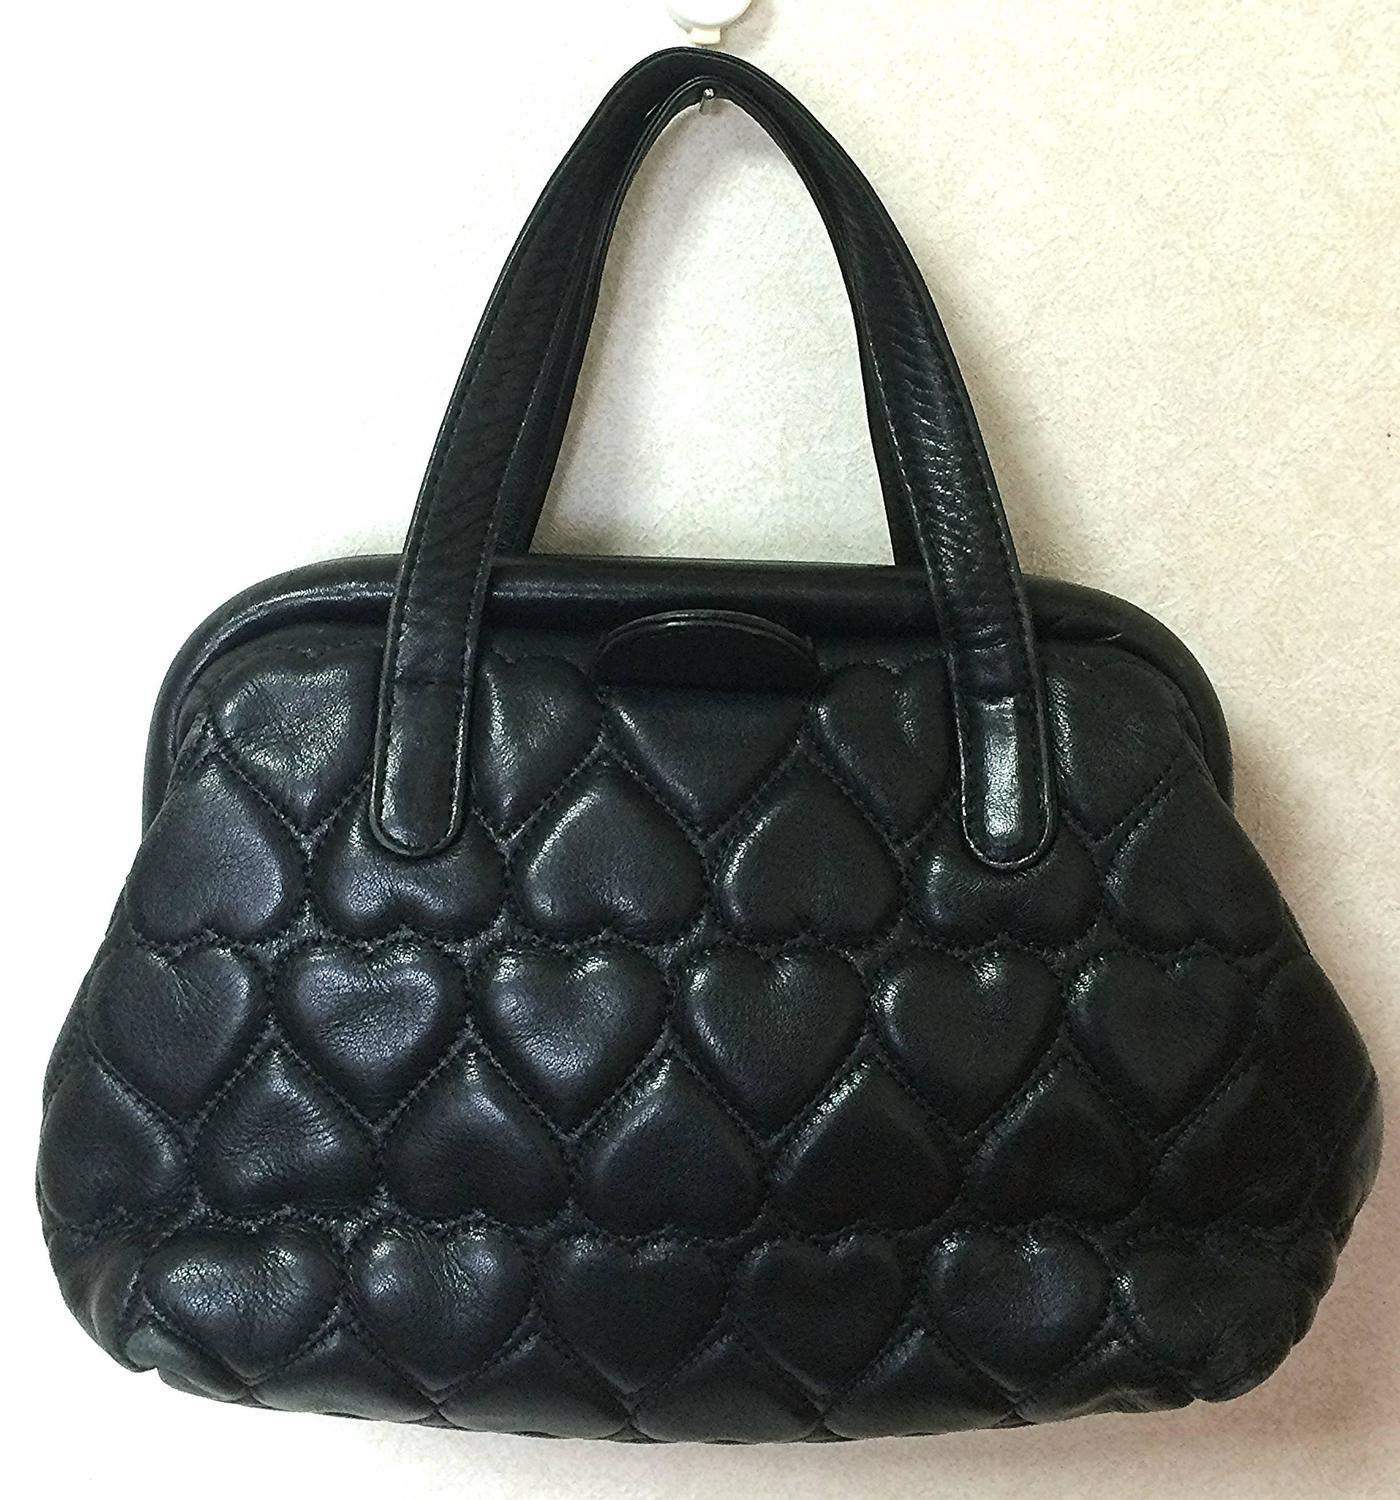 Vintage Moschino Black Heart Shape Quilted Lambskin Mini Handbag Tote Purse For Sale